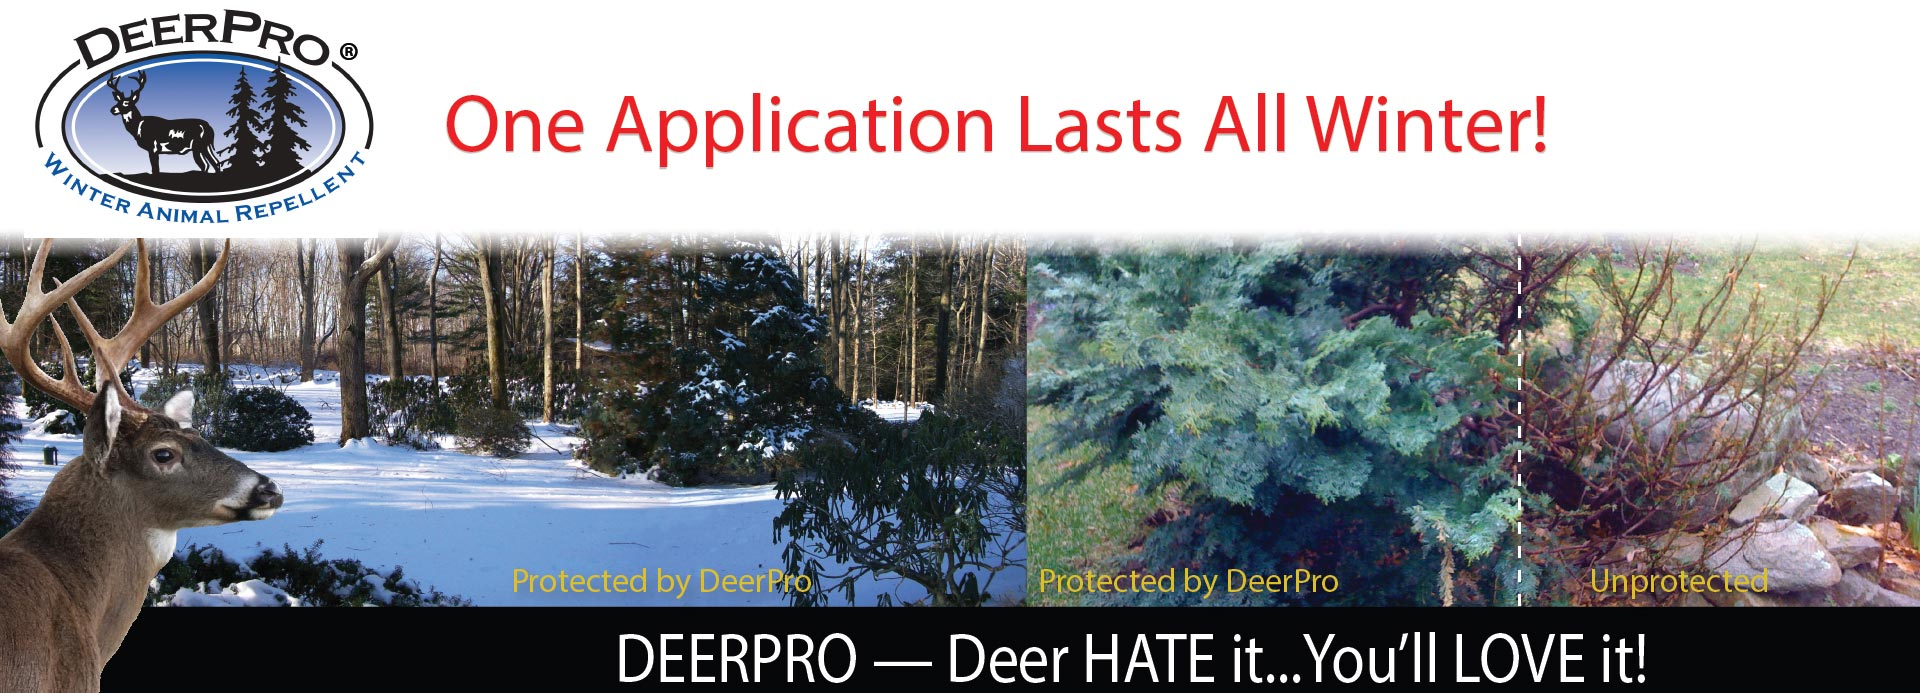 Nott Products DeerPro Winter banner